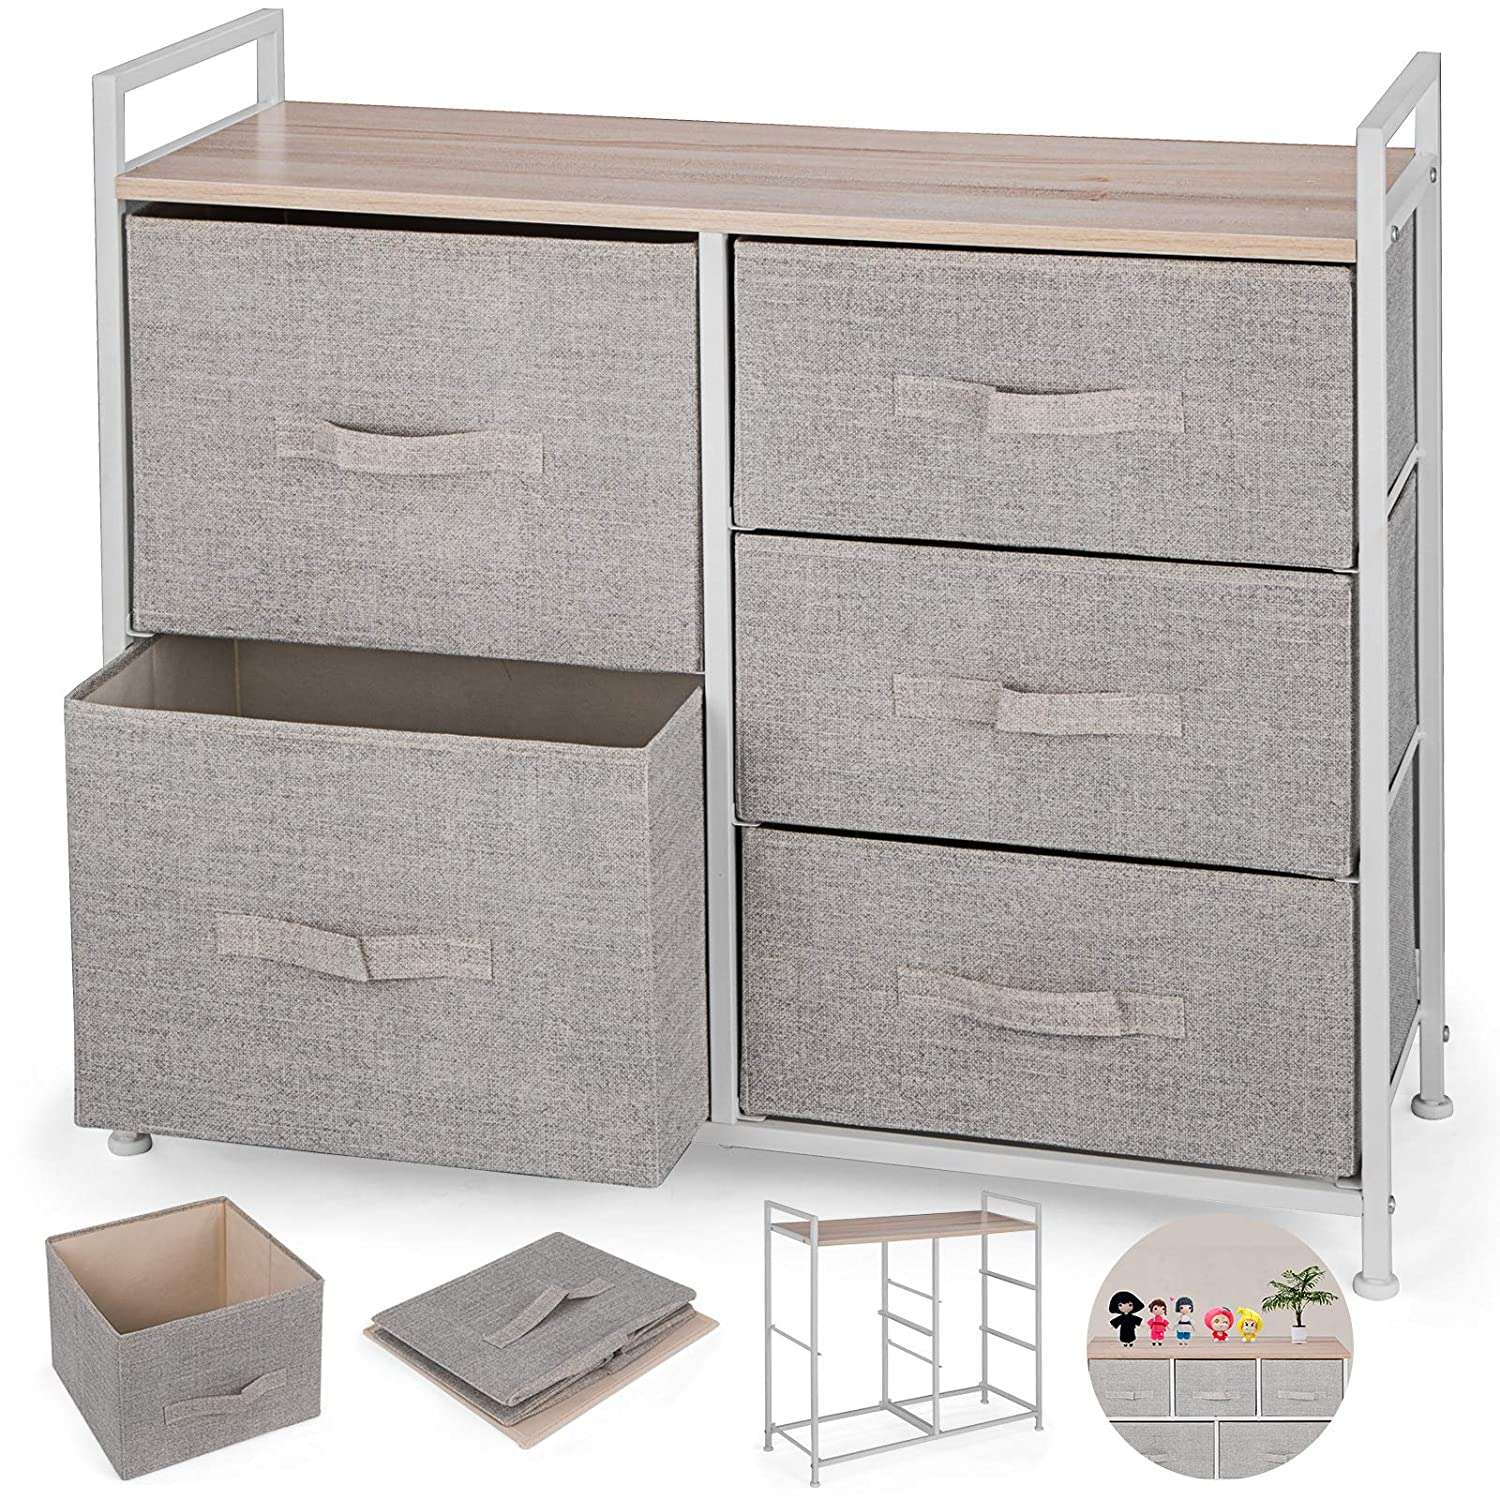 Happybuy 5-Drawer Storage Organizer Unit with Fabric Bins Bedroom Play Room Entryway Hallway Closets Steel Frame MDF Top Dresser Storage Tower Fabric ...